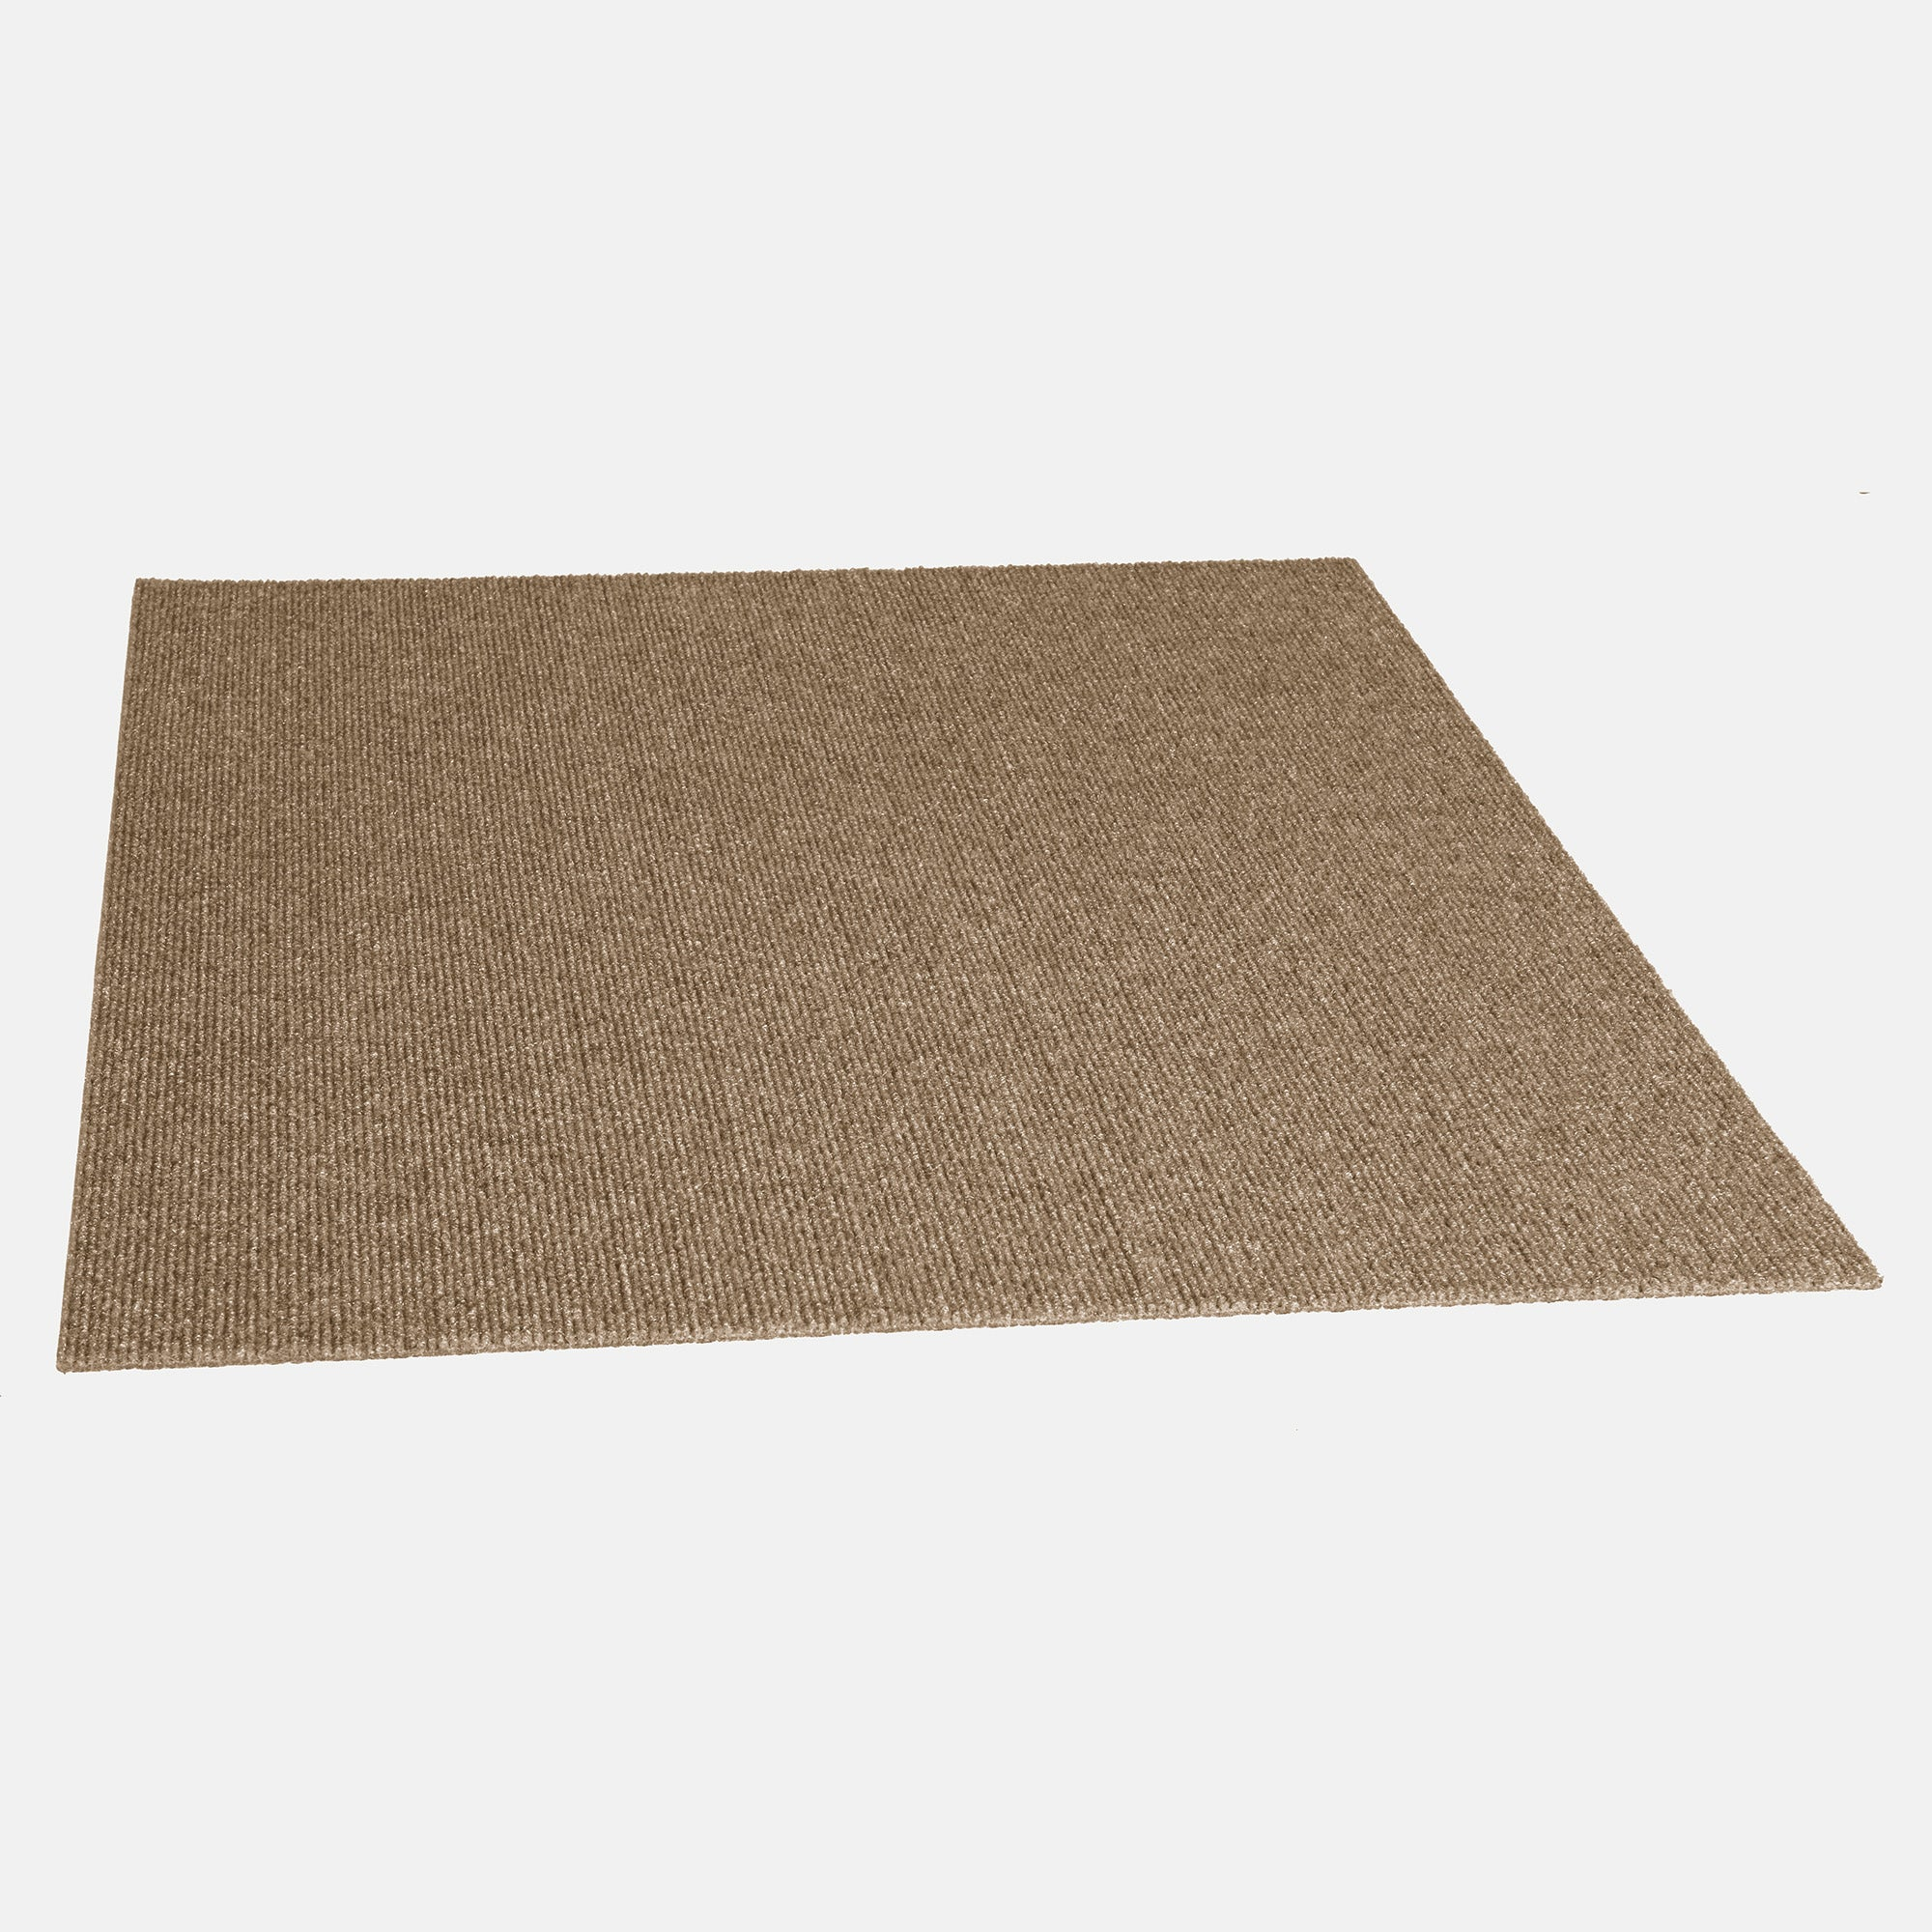 Pioneer 24'' X 24'' Premium Peel And Stick Carpet Tiles (Shadow)